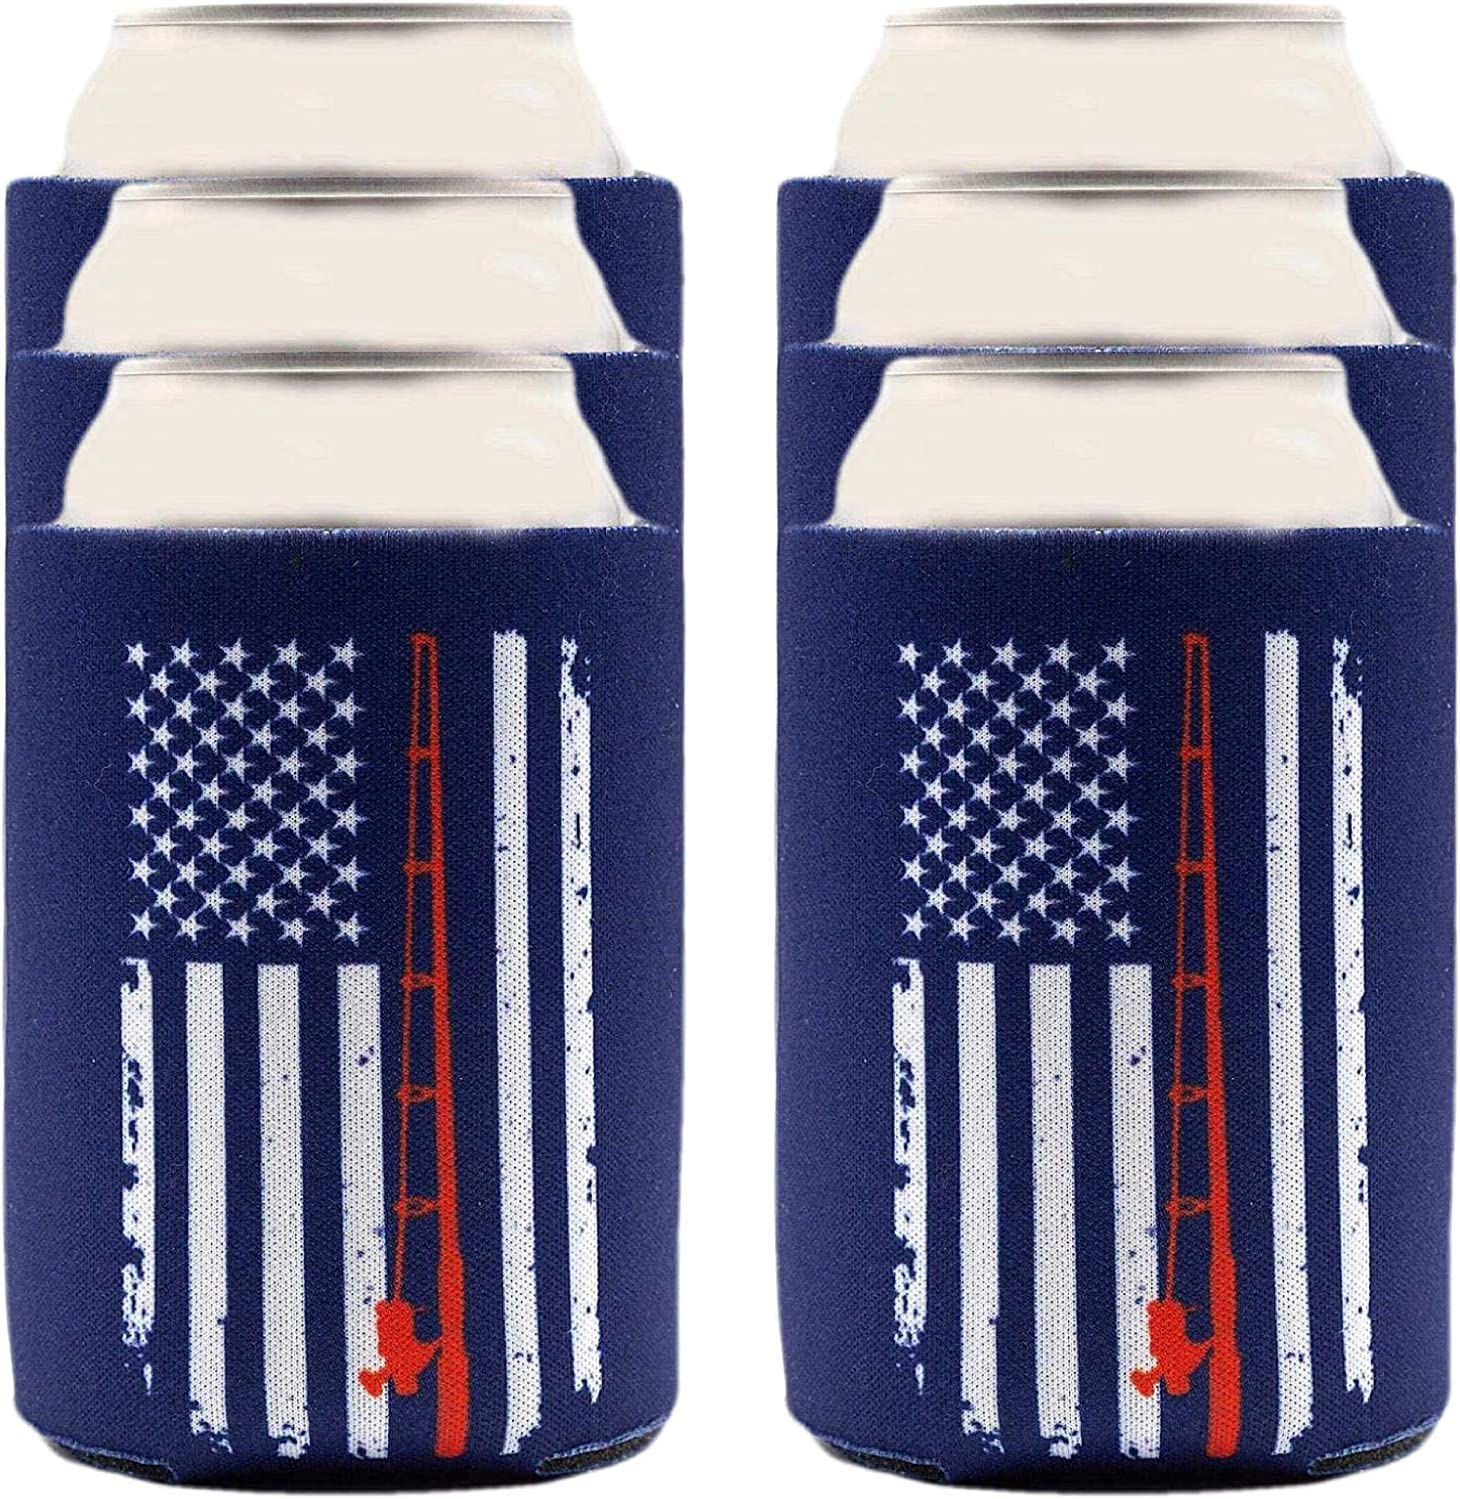 Fishing Gifts For Men & Women Can Cooler 6-Pack, Insulated Beer Sleeves Bundle for Bass, Trout, Saltwater and Fly Fishing, Patriotic Gift for Dad, Grandpa, Brother, Boyfriend [Navy Blue American Flag]